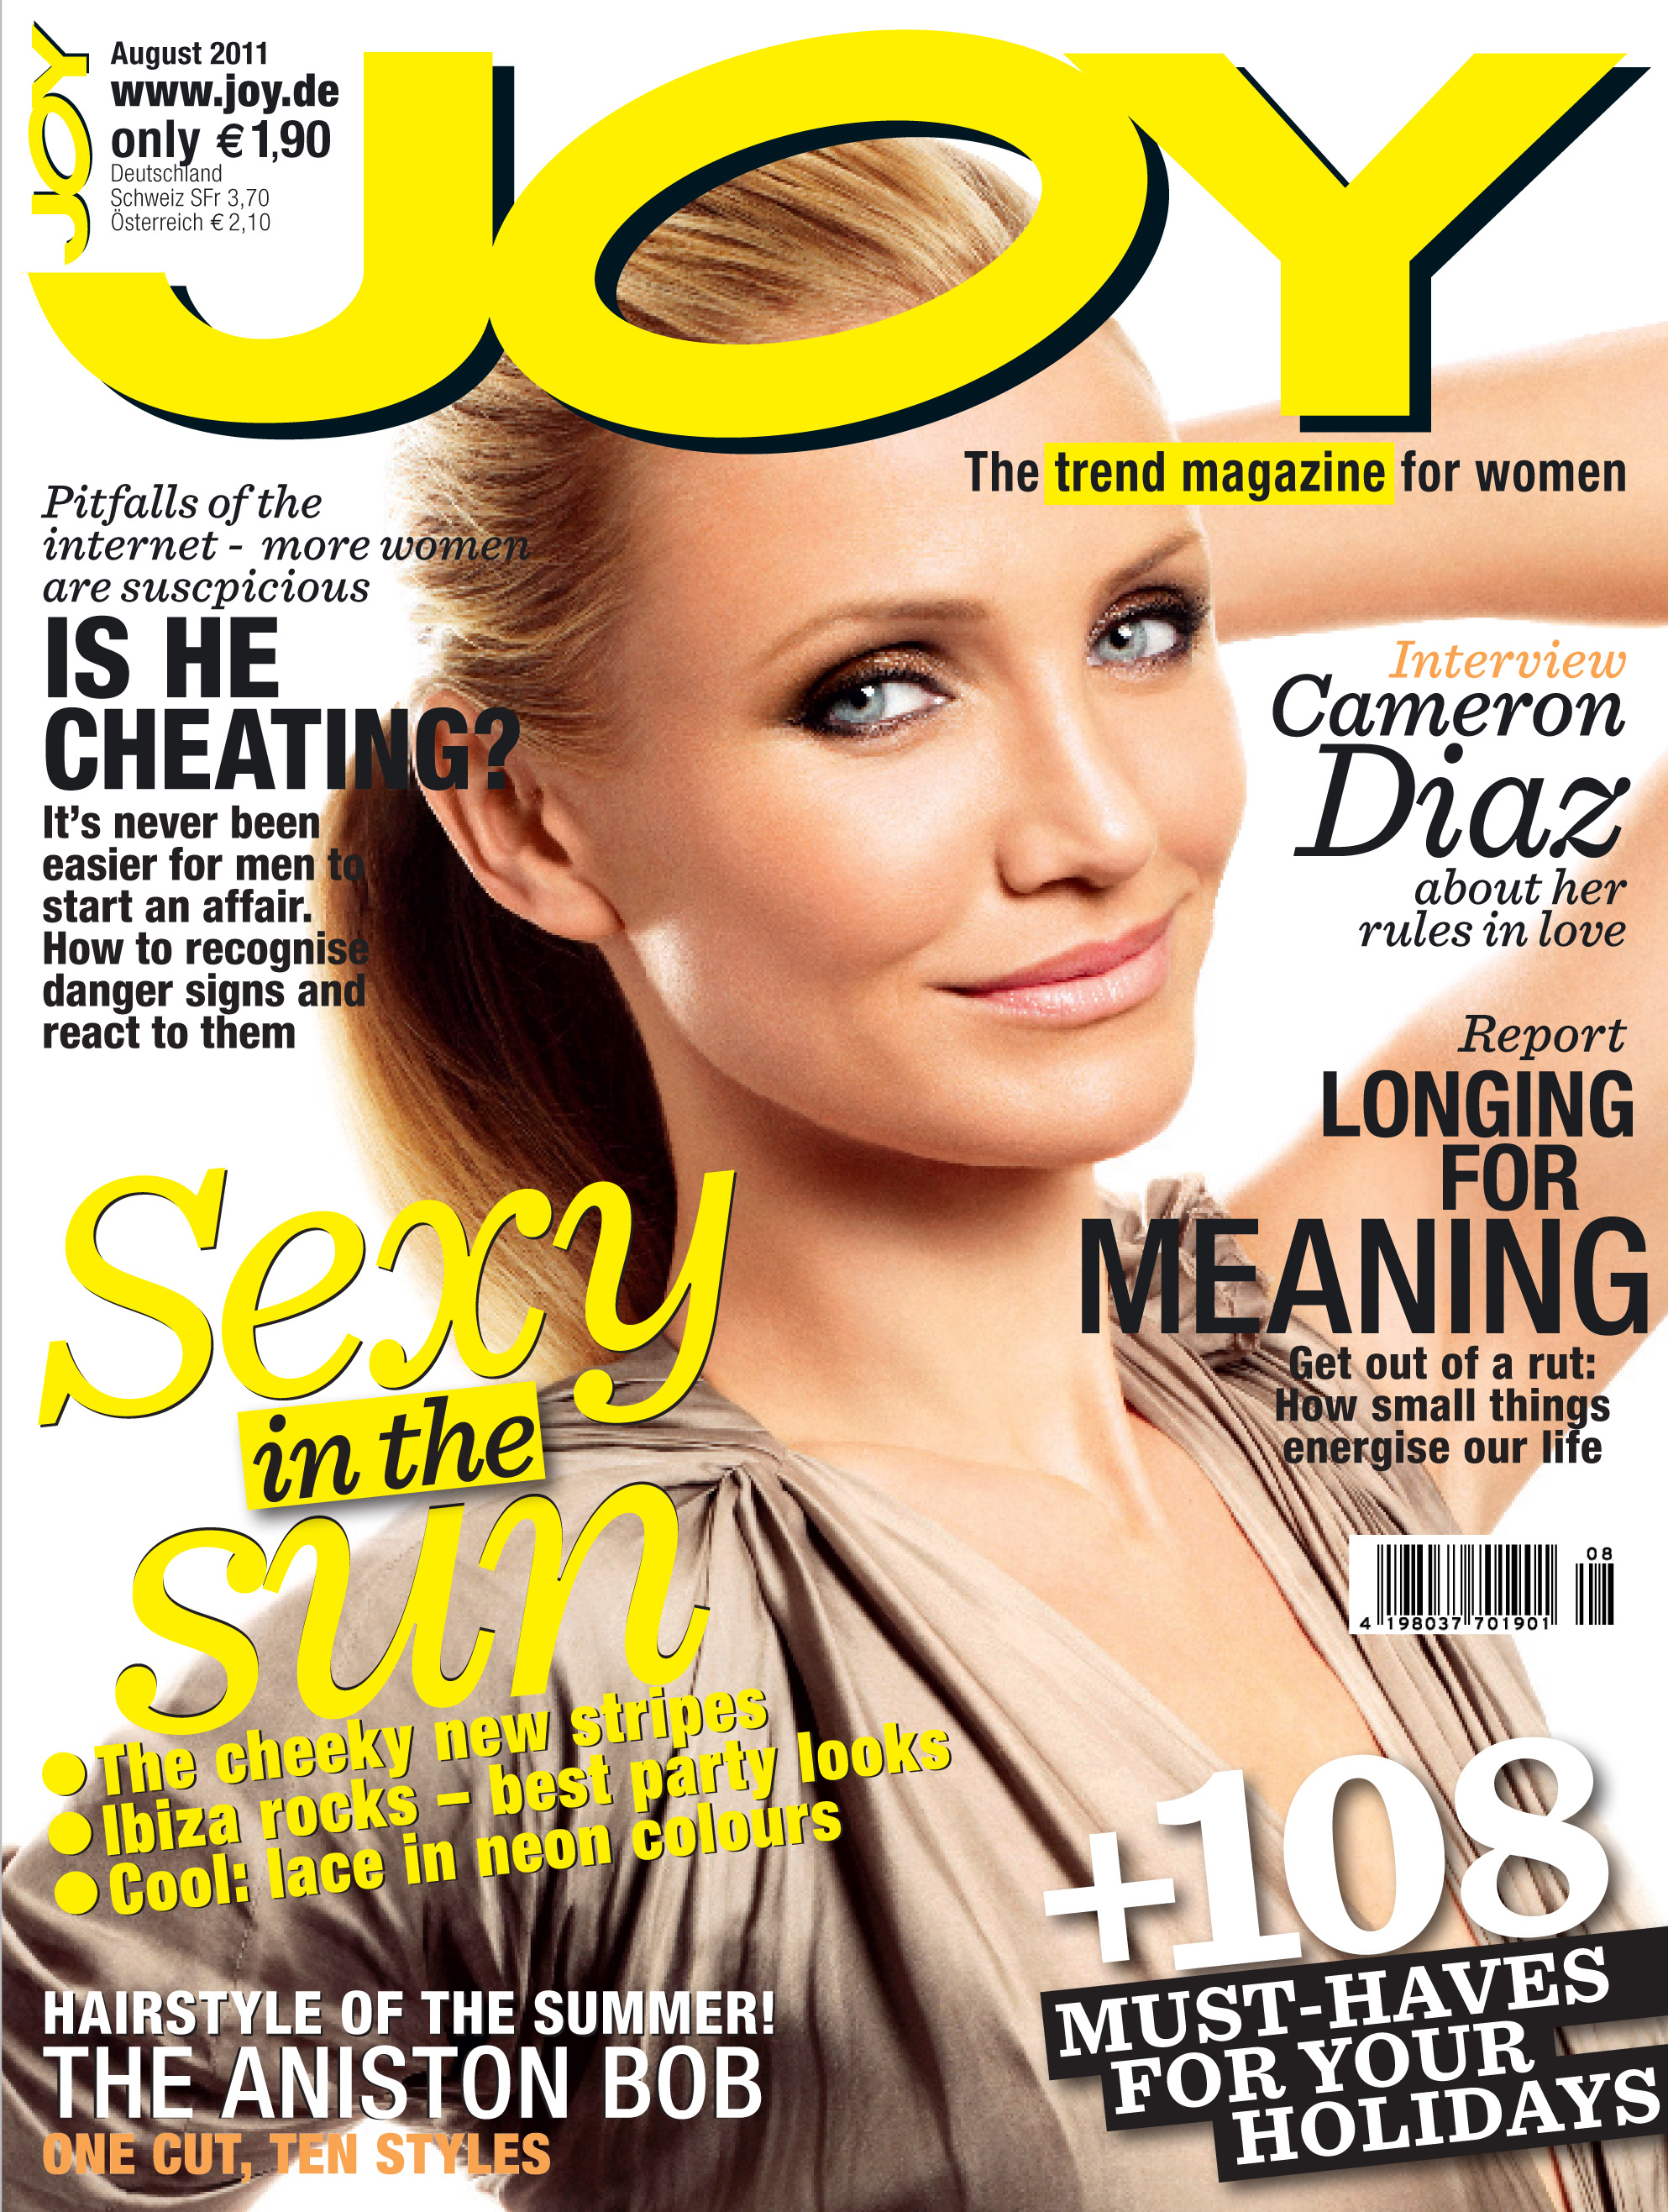 an analysis of who patronize womens weekly magazines the most The magazine is published six times a year, and offers a deliberative mix of reporting, analysis, criticism, and commentary cjrorg, our web site, delivers real-time criticism and reporting, giving cjr a vital presence in the ongoing conversation about the media.